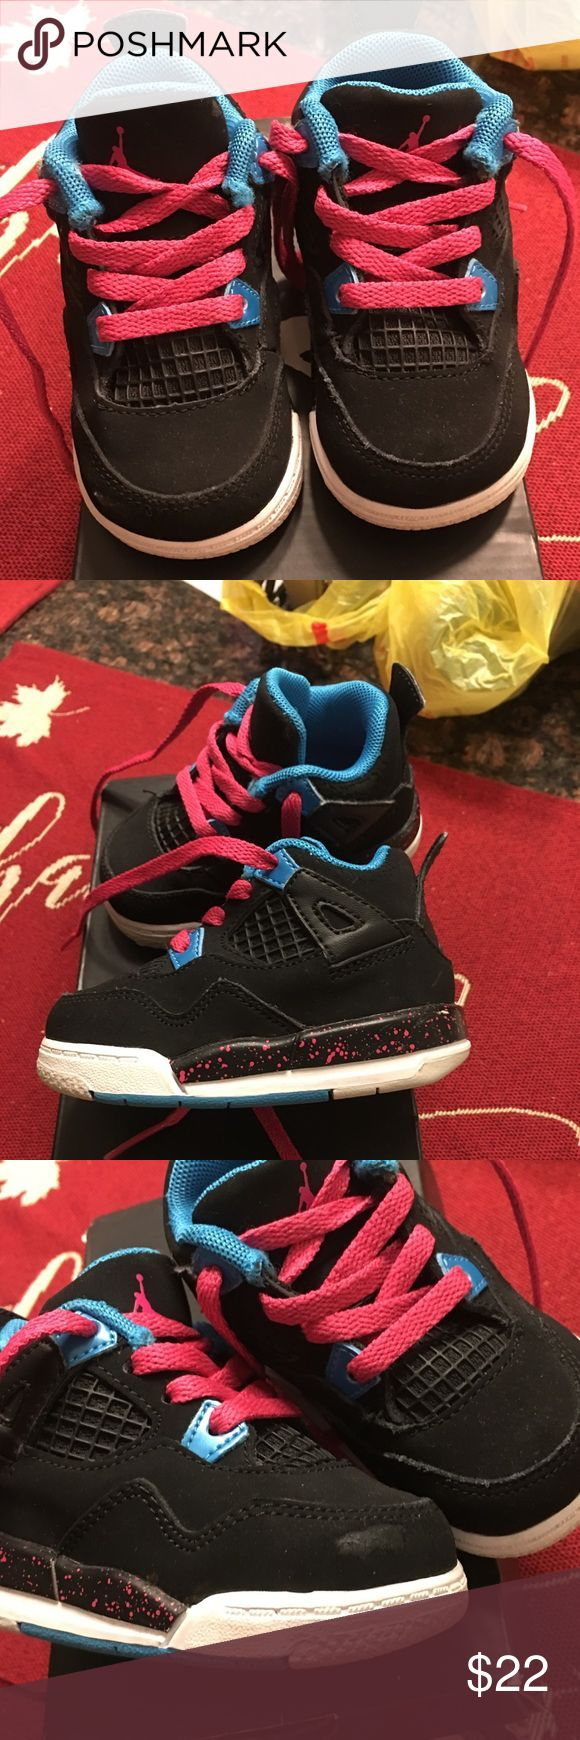 Baby/Toddler Jordan's Practically brand new. Only worn a few times. Great condition other than a small scrape as shown in pic. Offers are welcome Jordan Shoes Sneakers